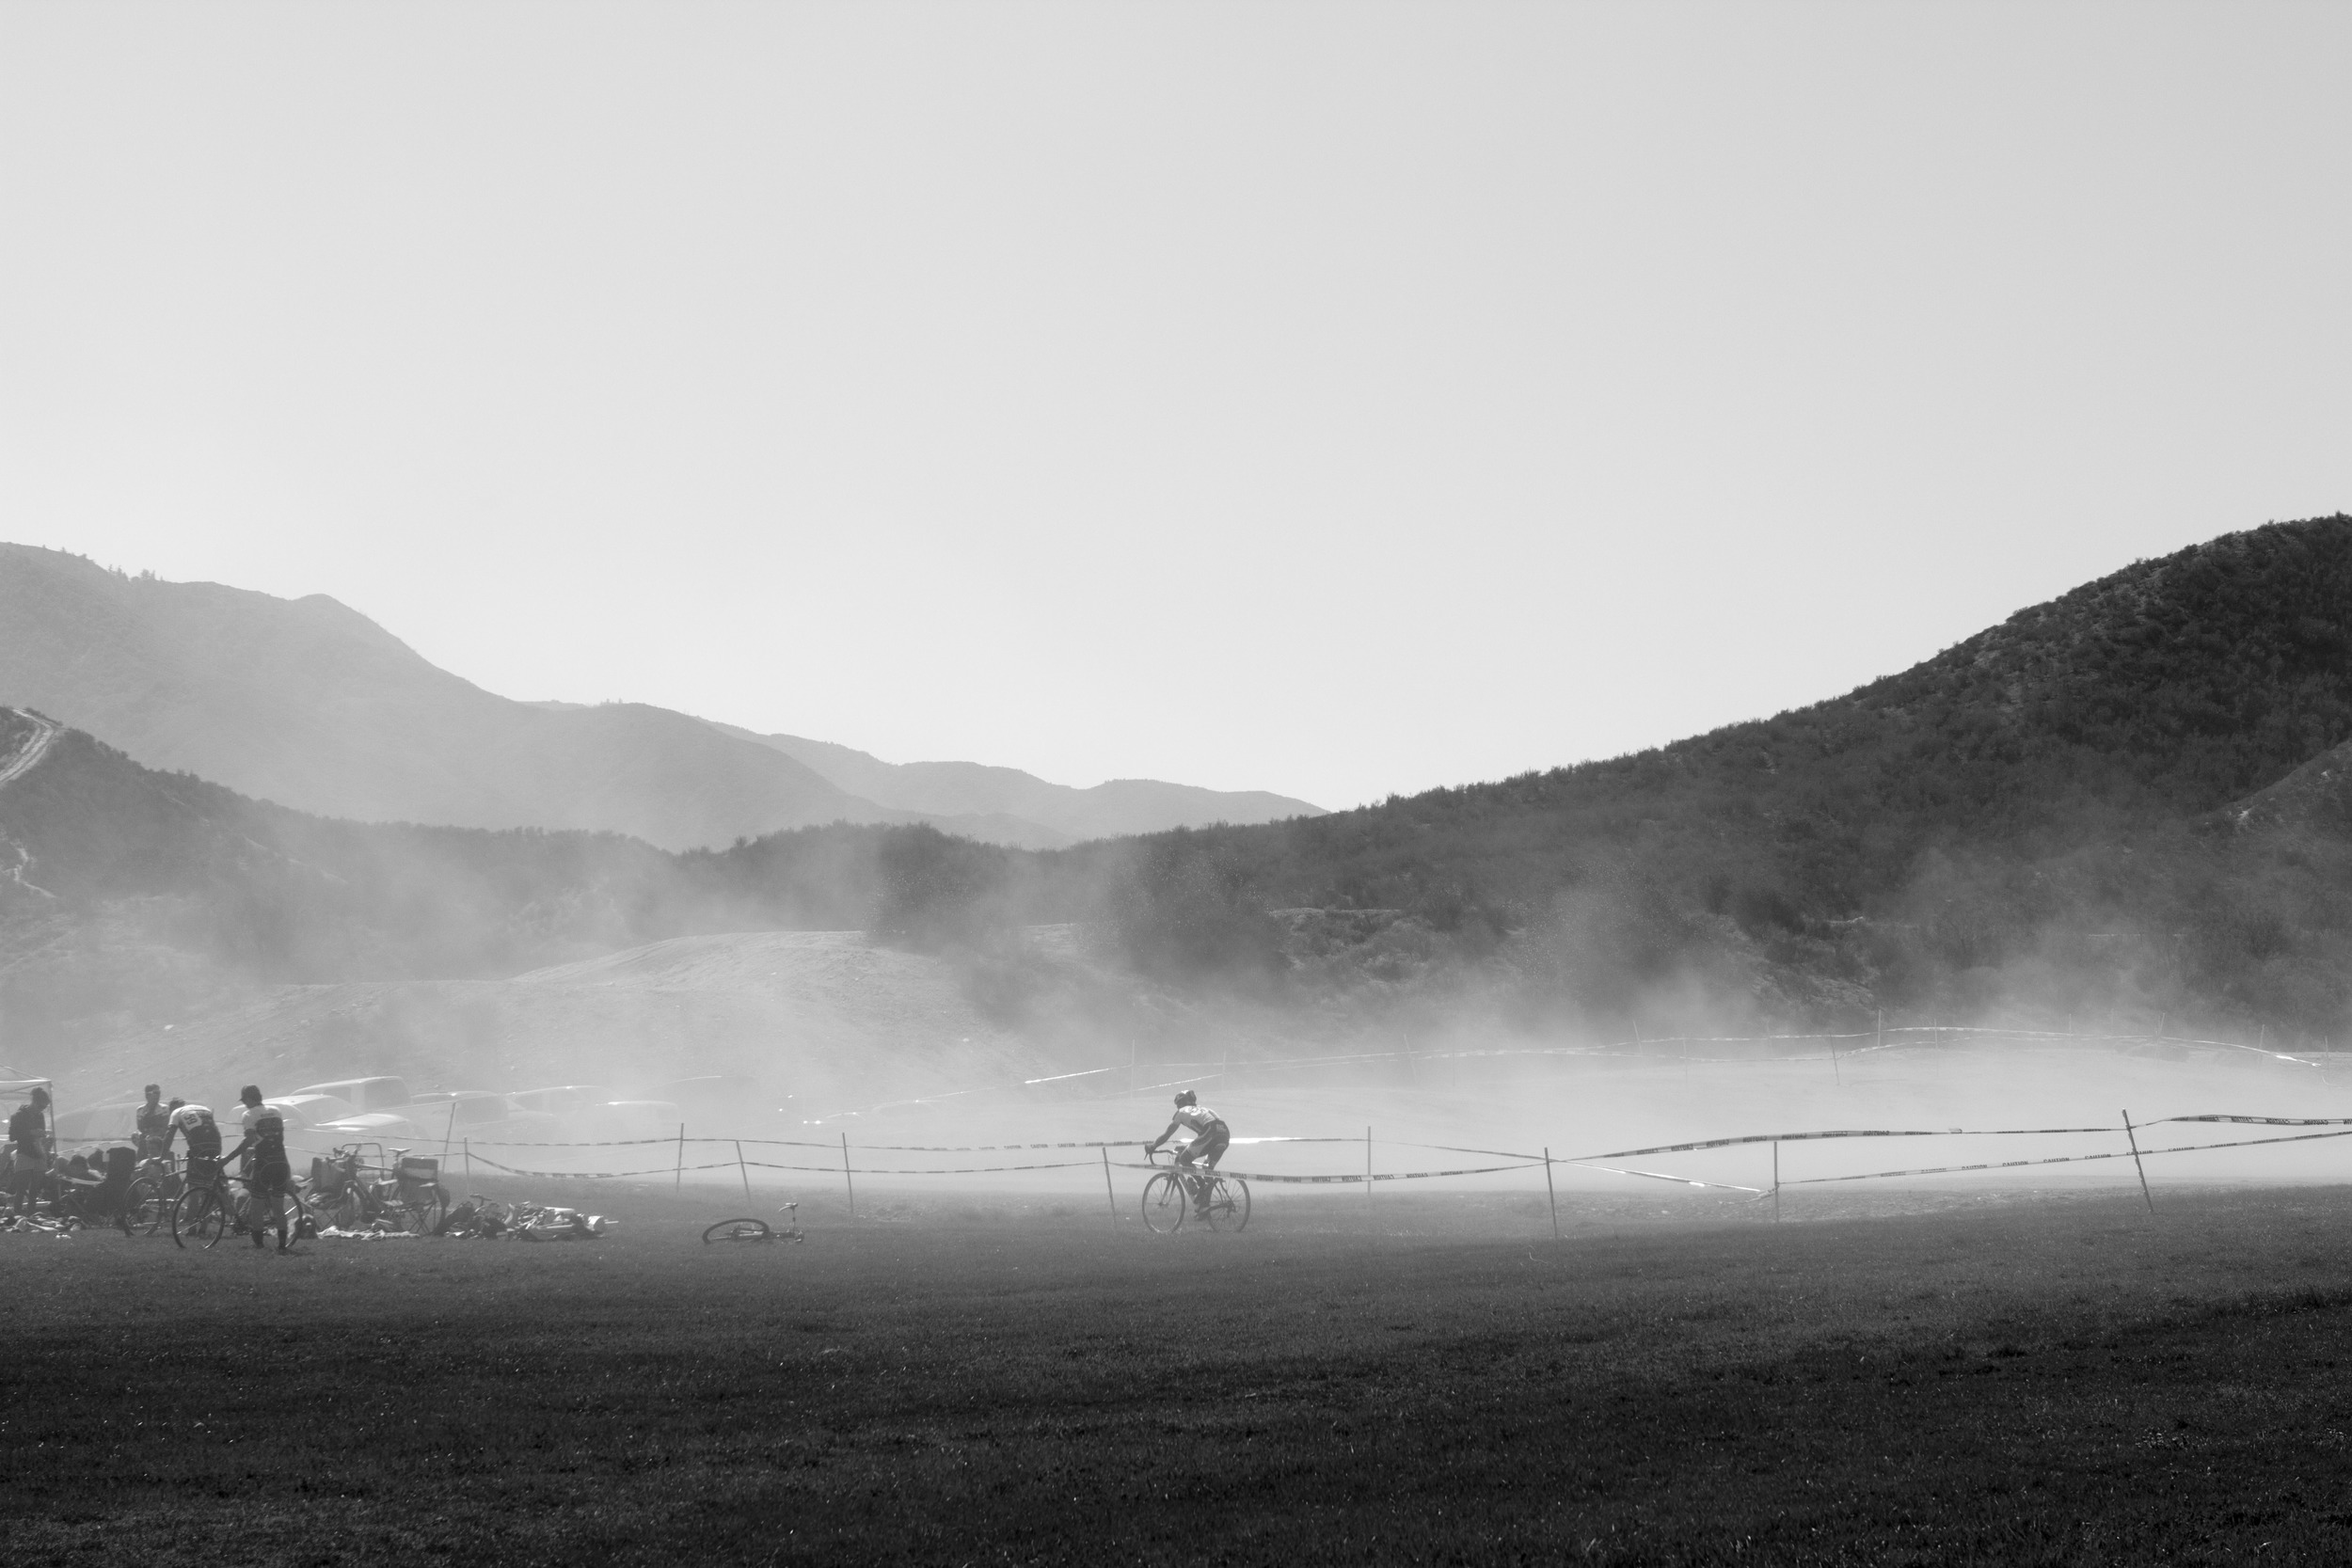 2. Dusty SoCal cyclocross.